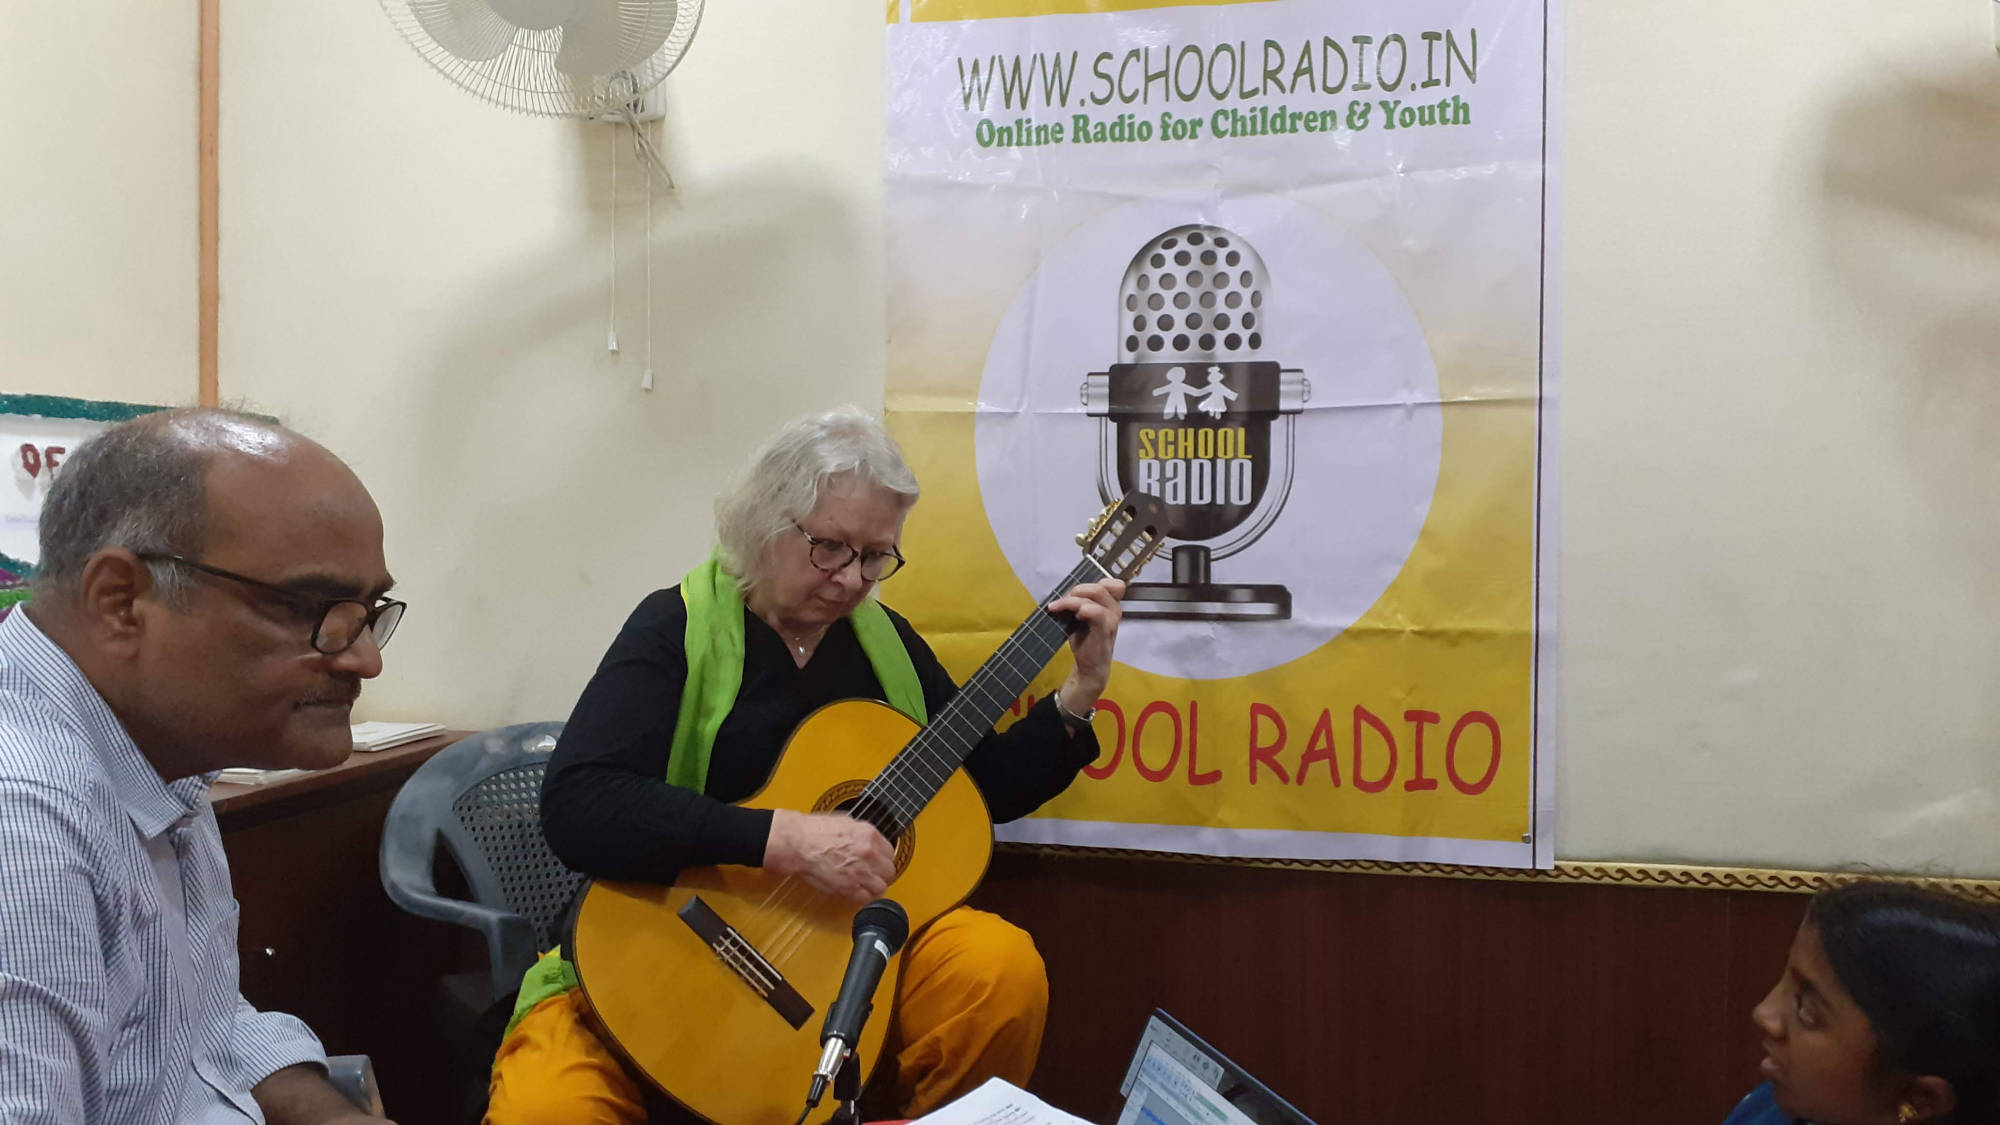 School Radio recording